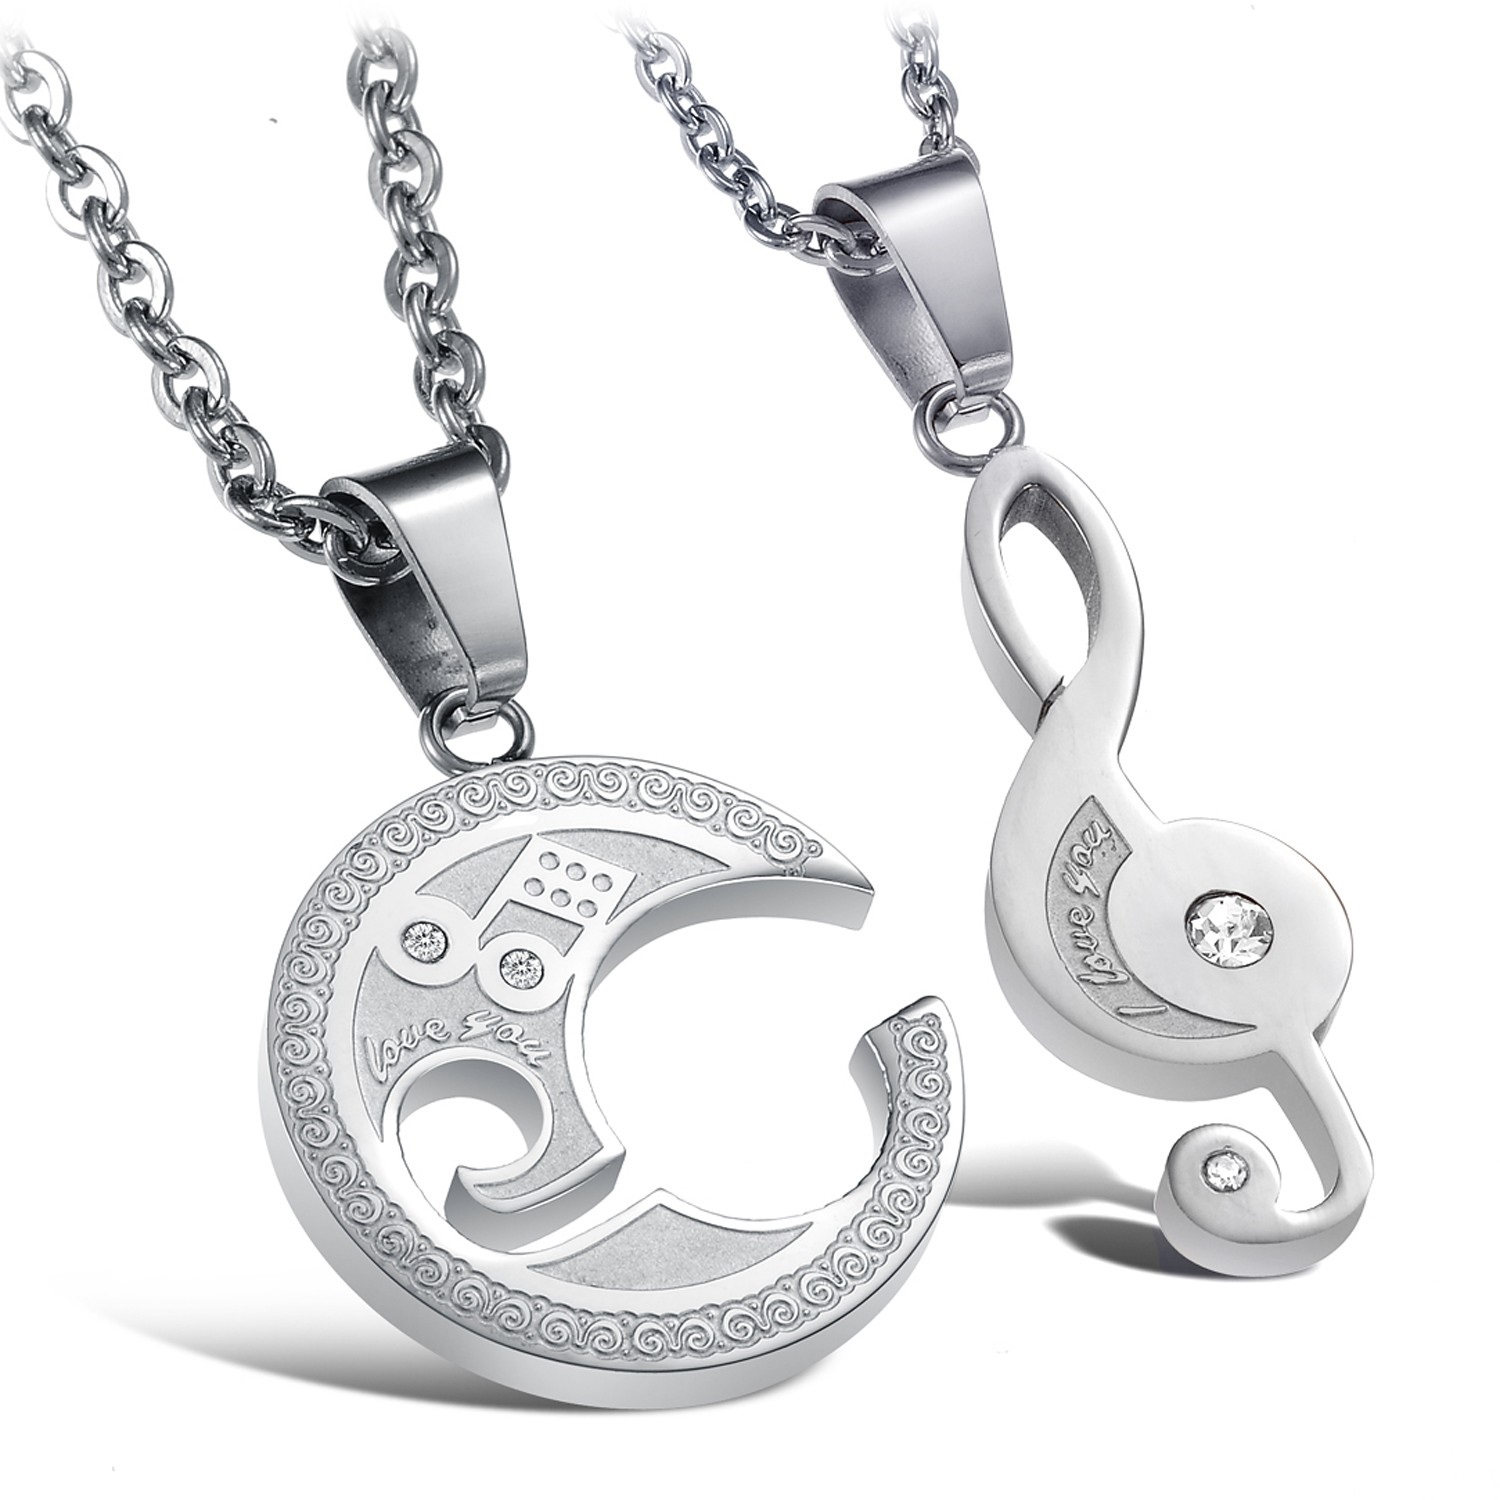 Music-Notes-Symbol-Titanium-Steel-CZ-Couples-Pendants-Necklaces-Matching-Set_8940_1